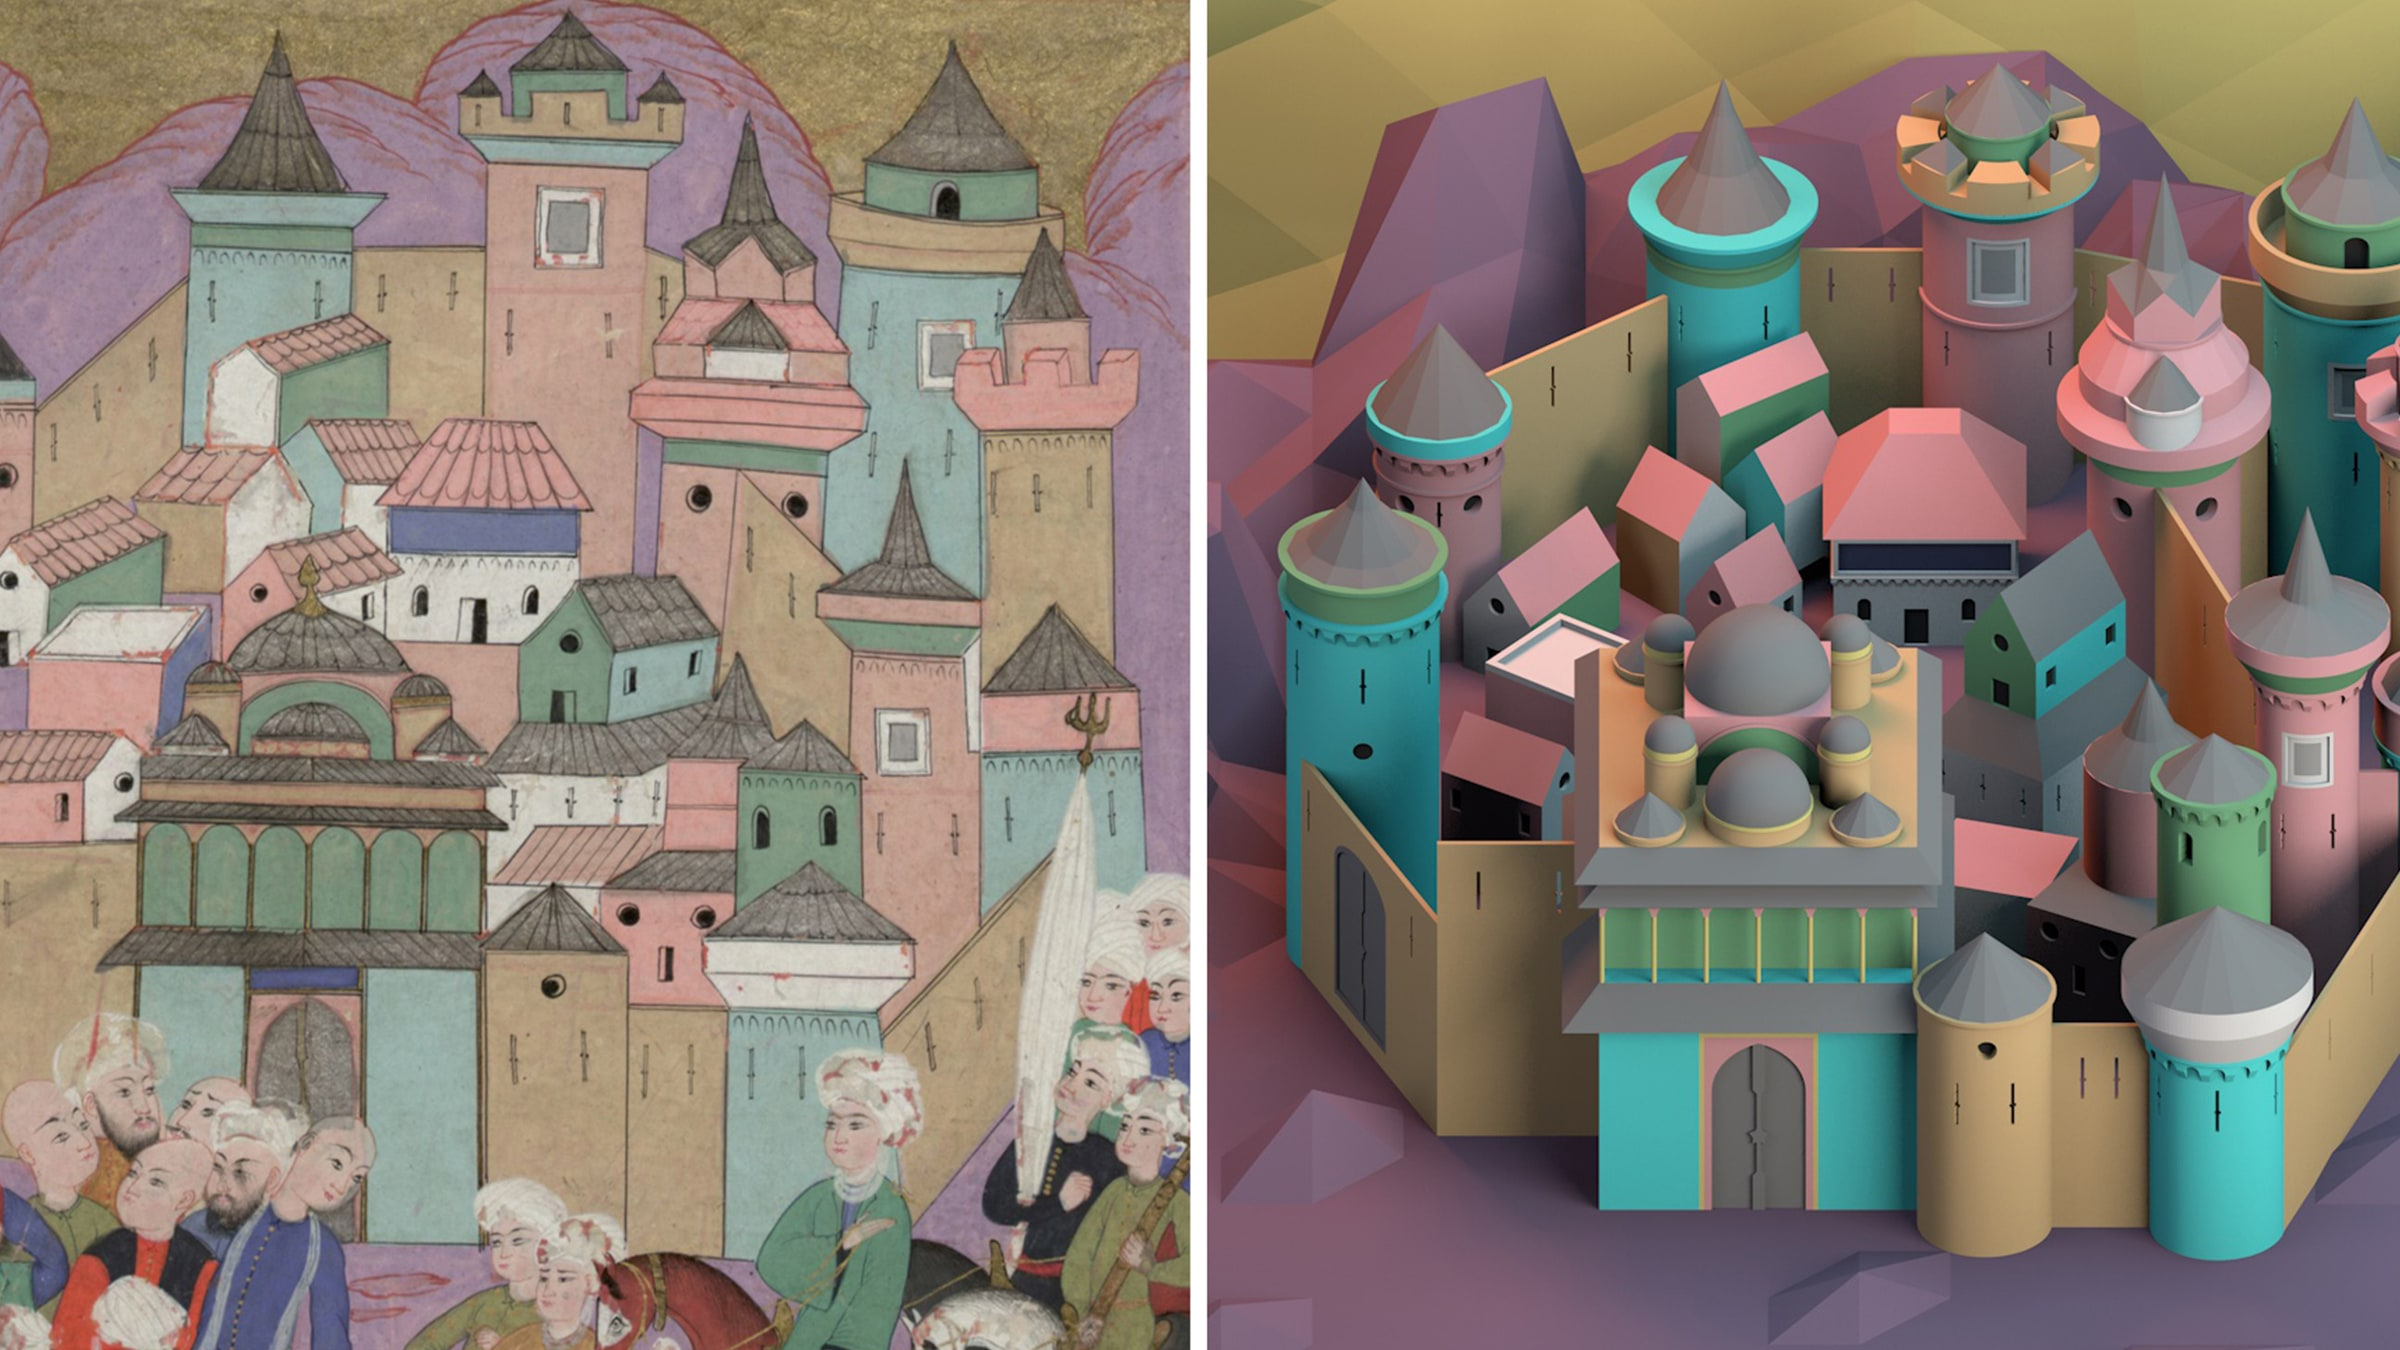 Online Talk <br> Fragmented Architectural Space in Ottoman Miniature Art <br> Intercultural Interactions and Relationships Beyond Time